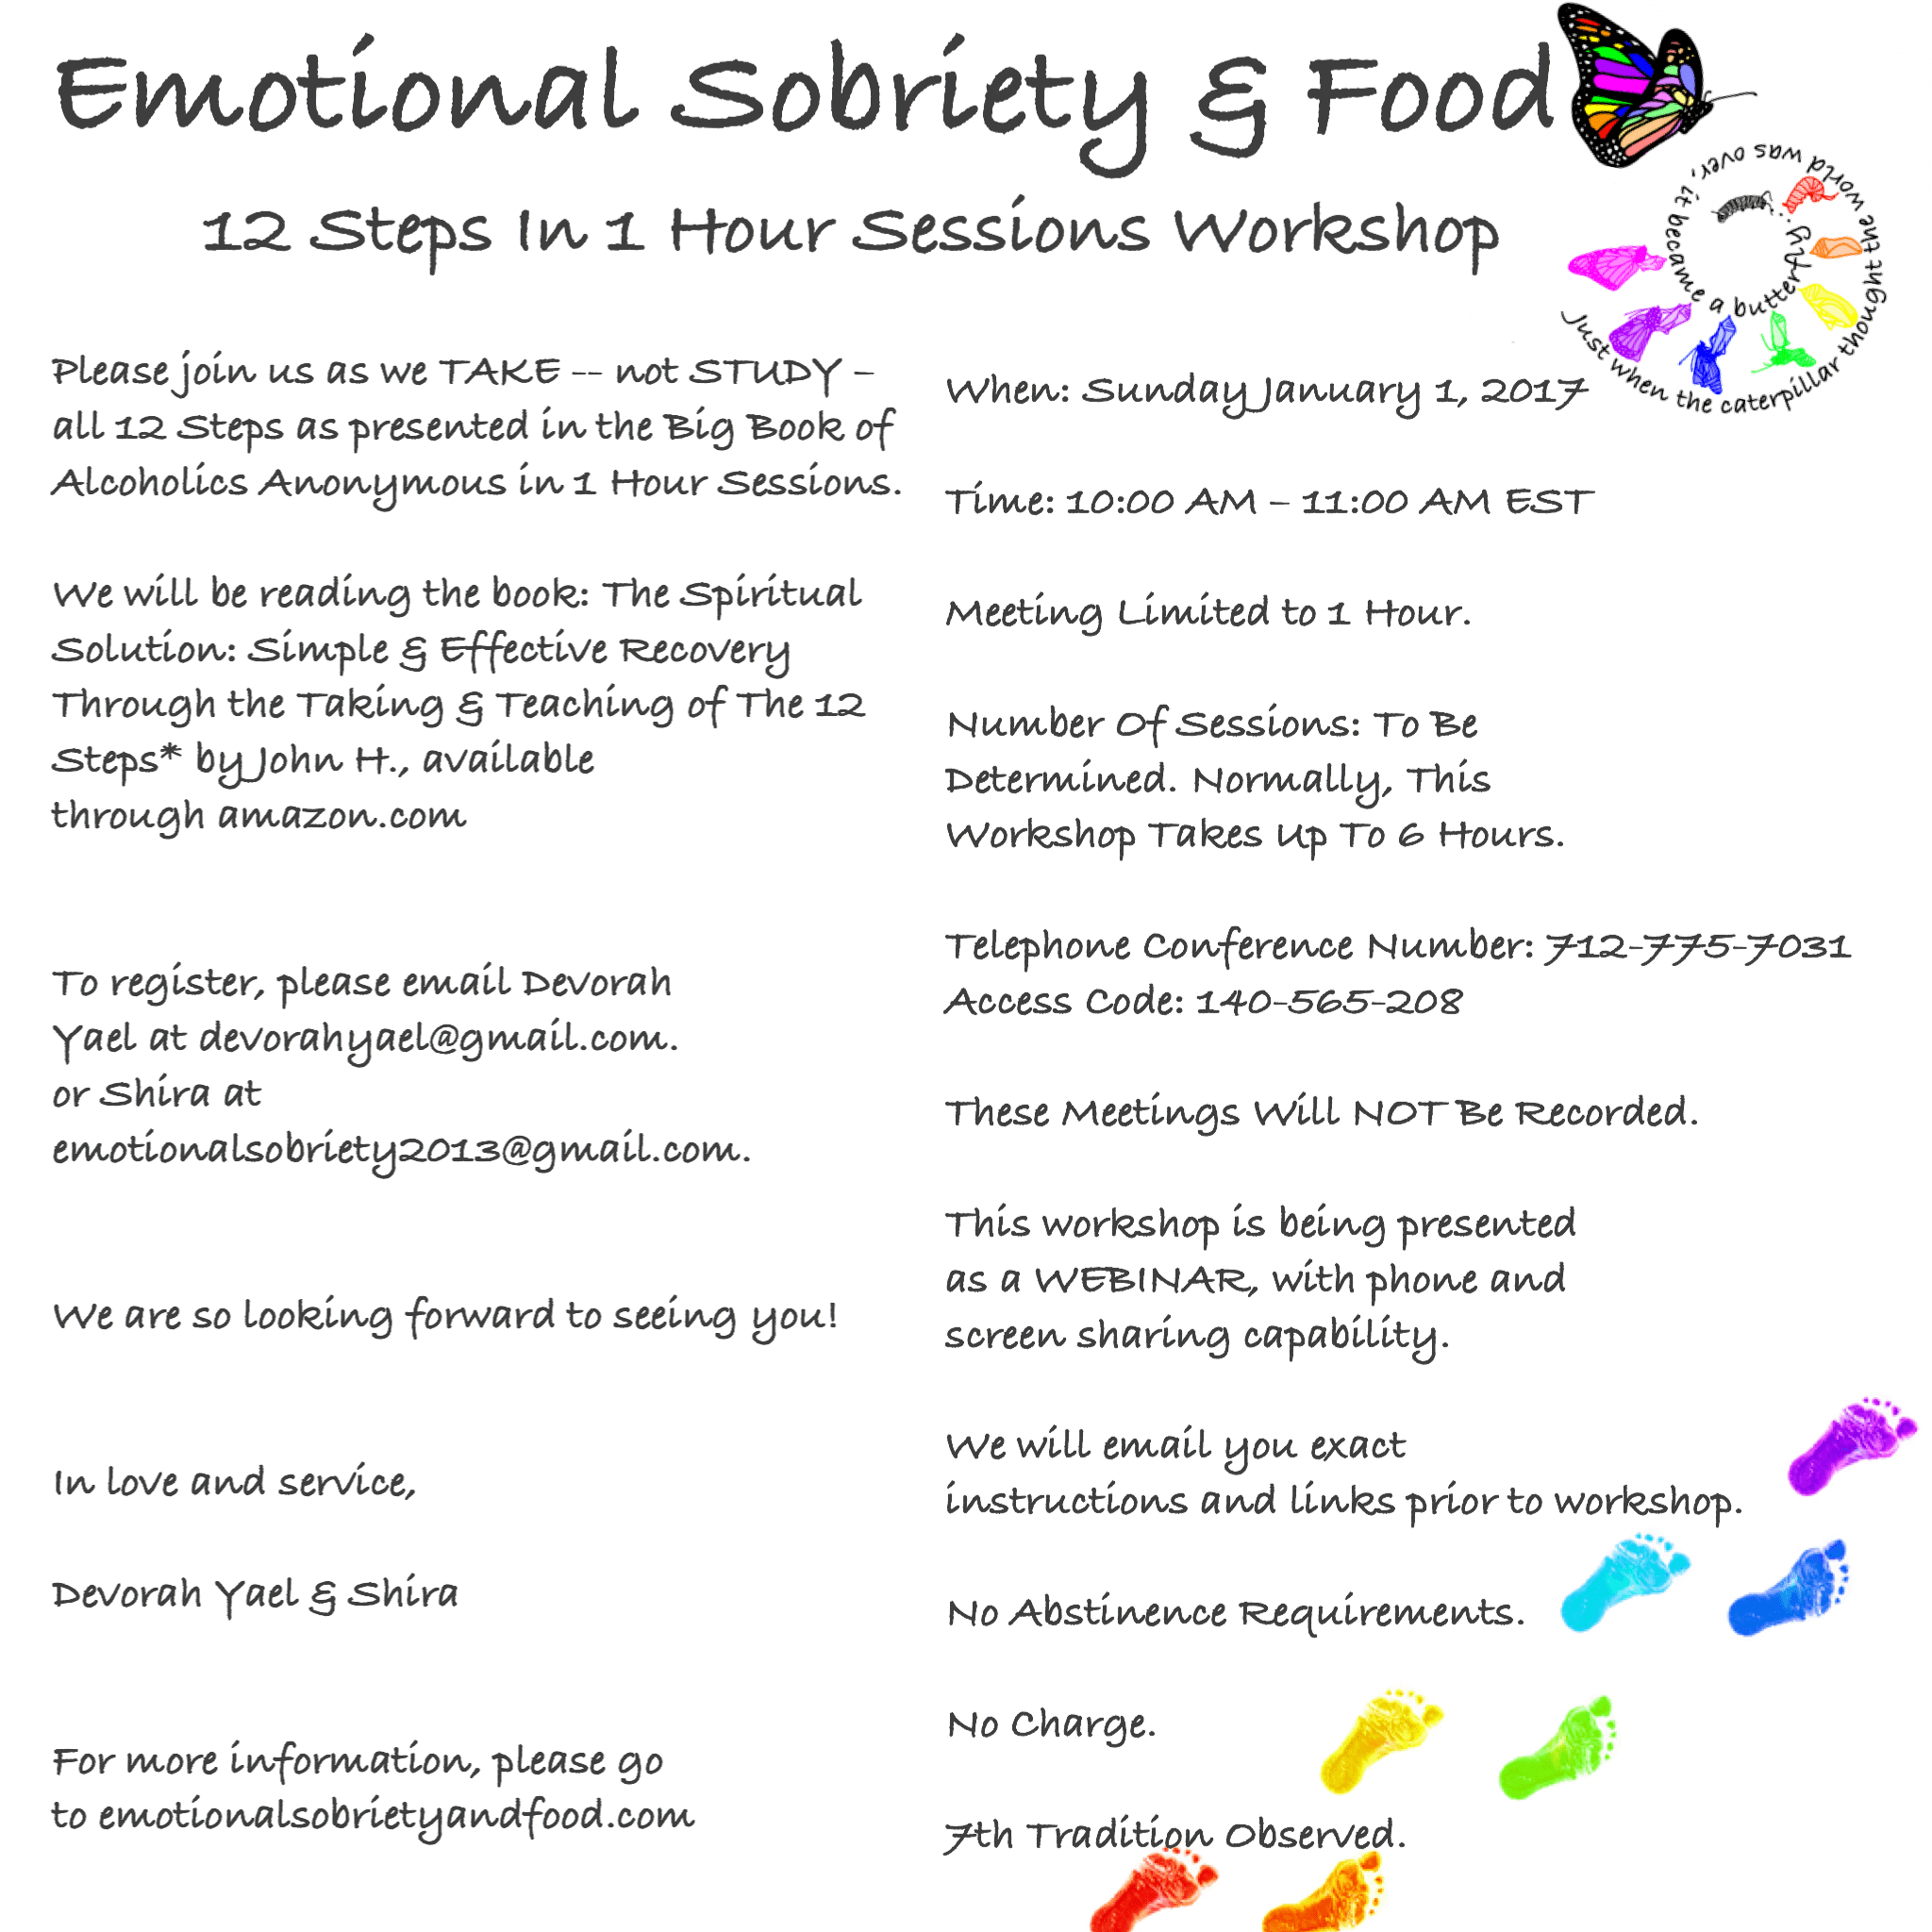 Emotional Sobriety And Food 12 Steps In 1 Hour Sessions Workshop Emotional Sobriety And Food